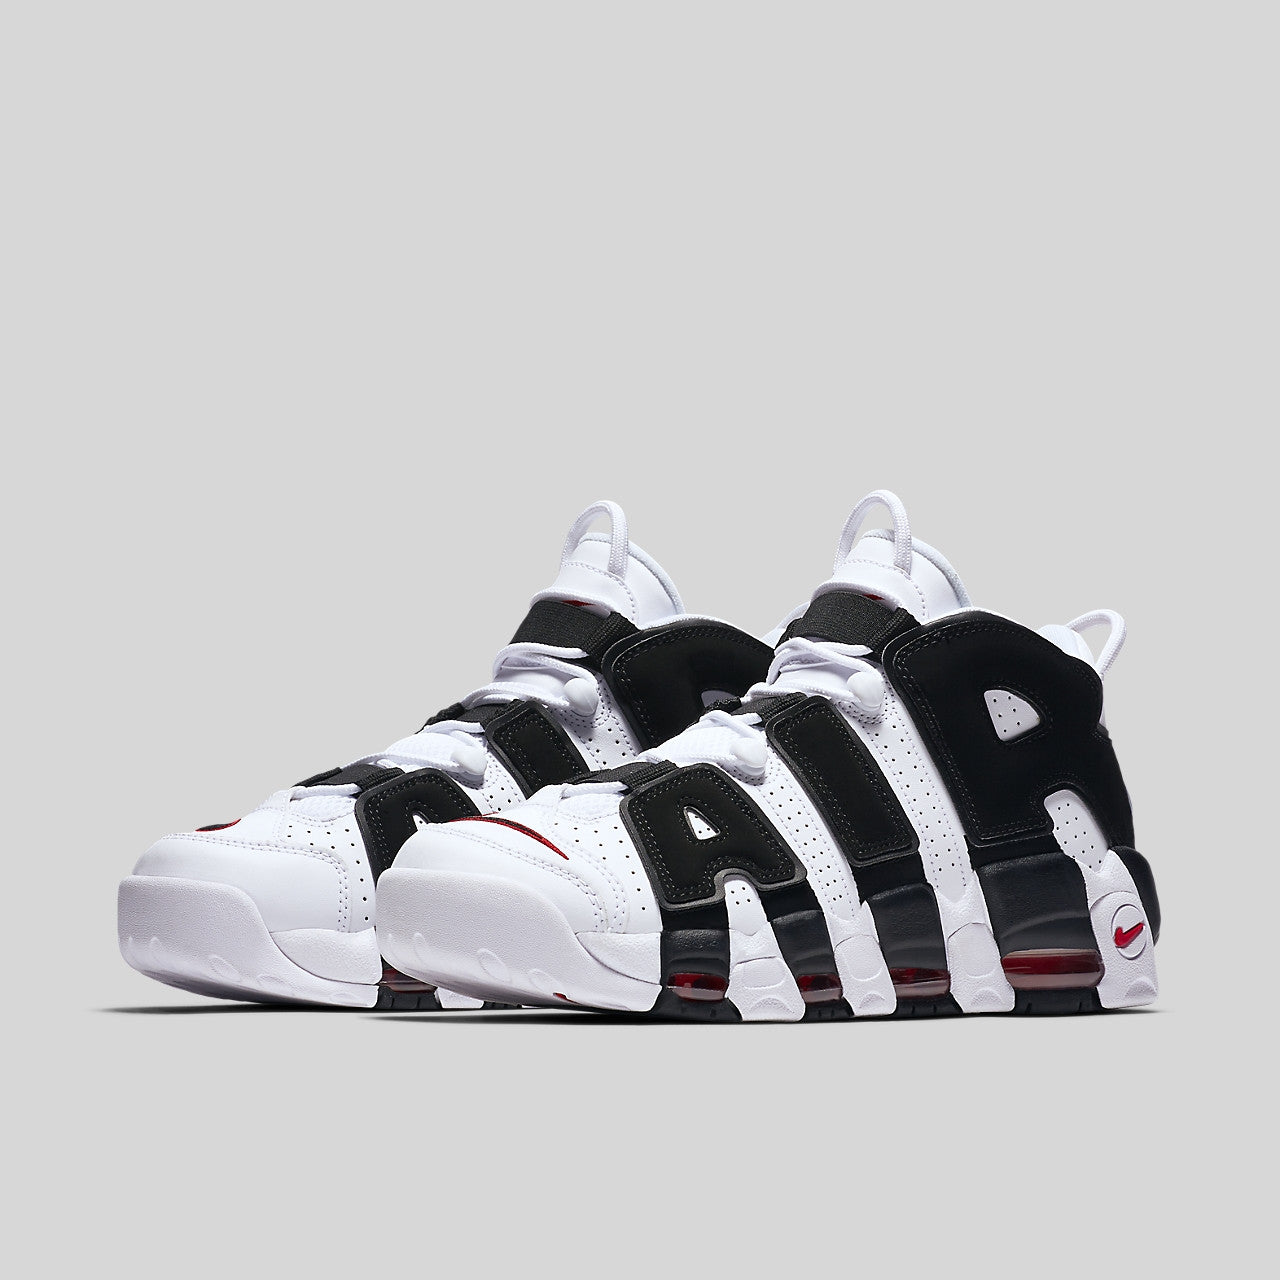 6a90e23304a Nike Air More Uptempo White Black Varsity Red (414962-105)